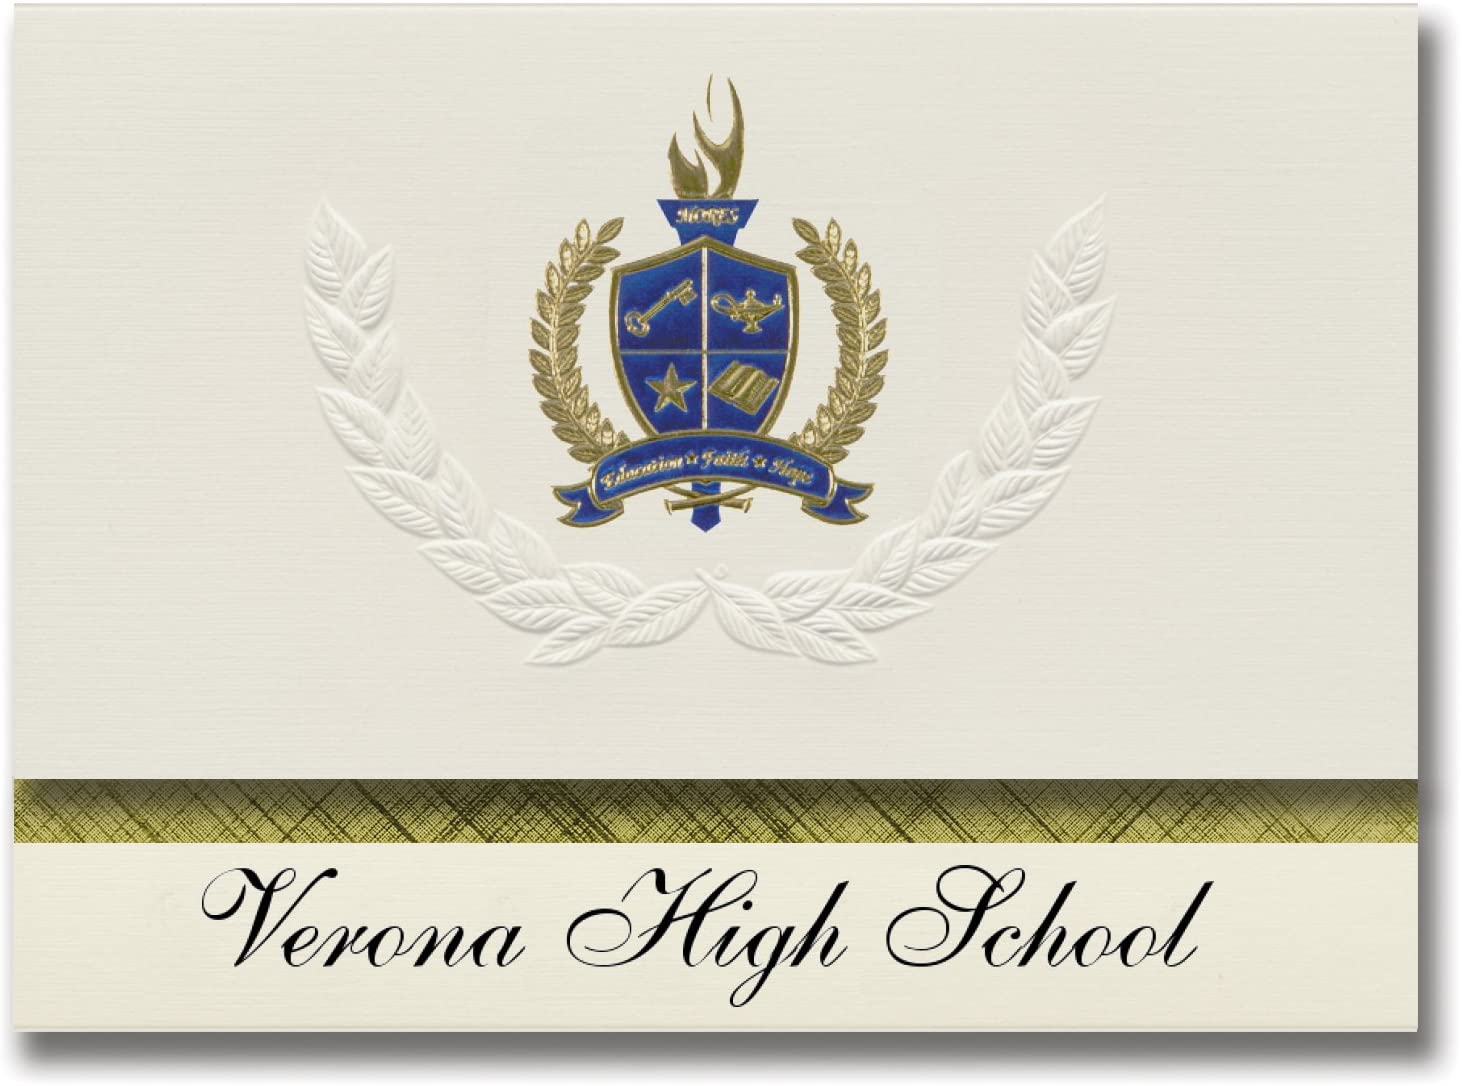 Signature Announcements Verona High School (Verona, NJ) Graduation Announcements, Presidential style, Basic package of 25 with Gold & Blue Metallic Foil seal